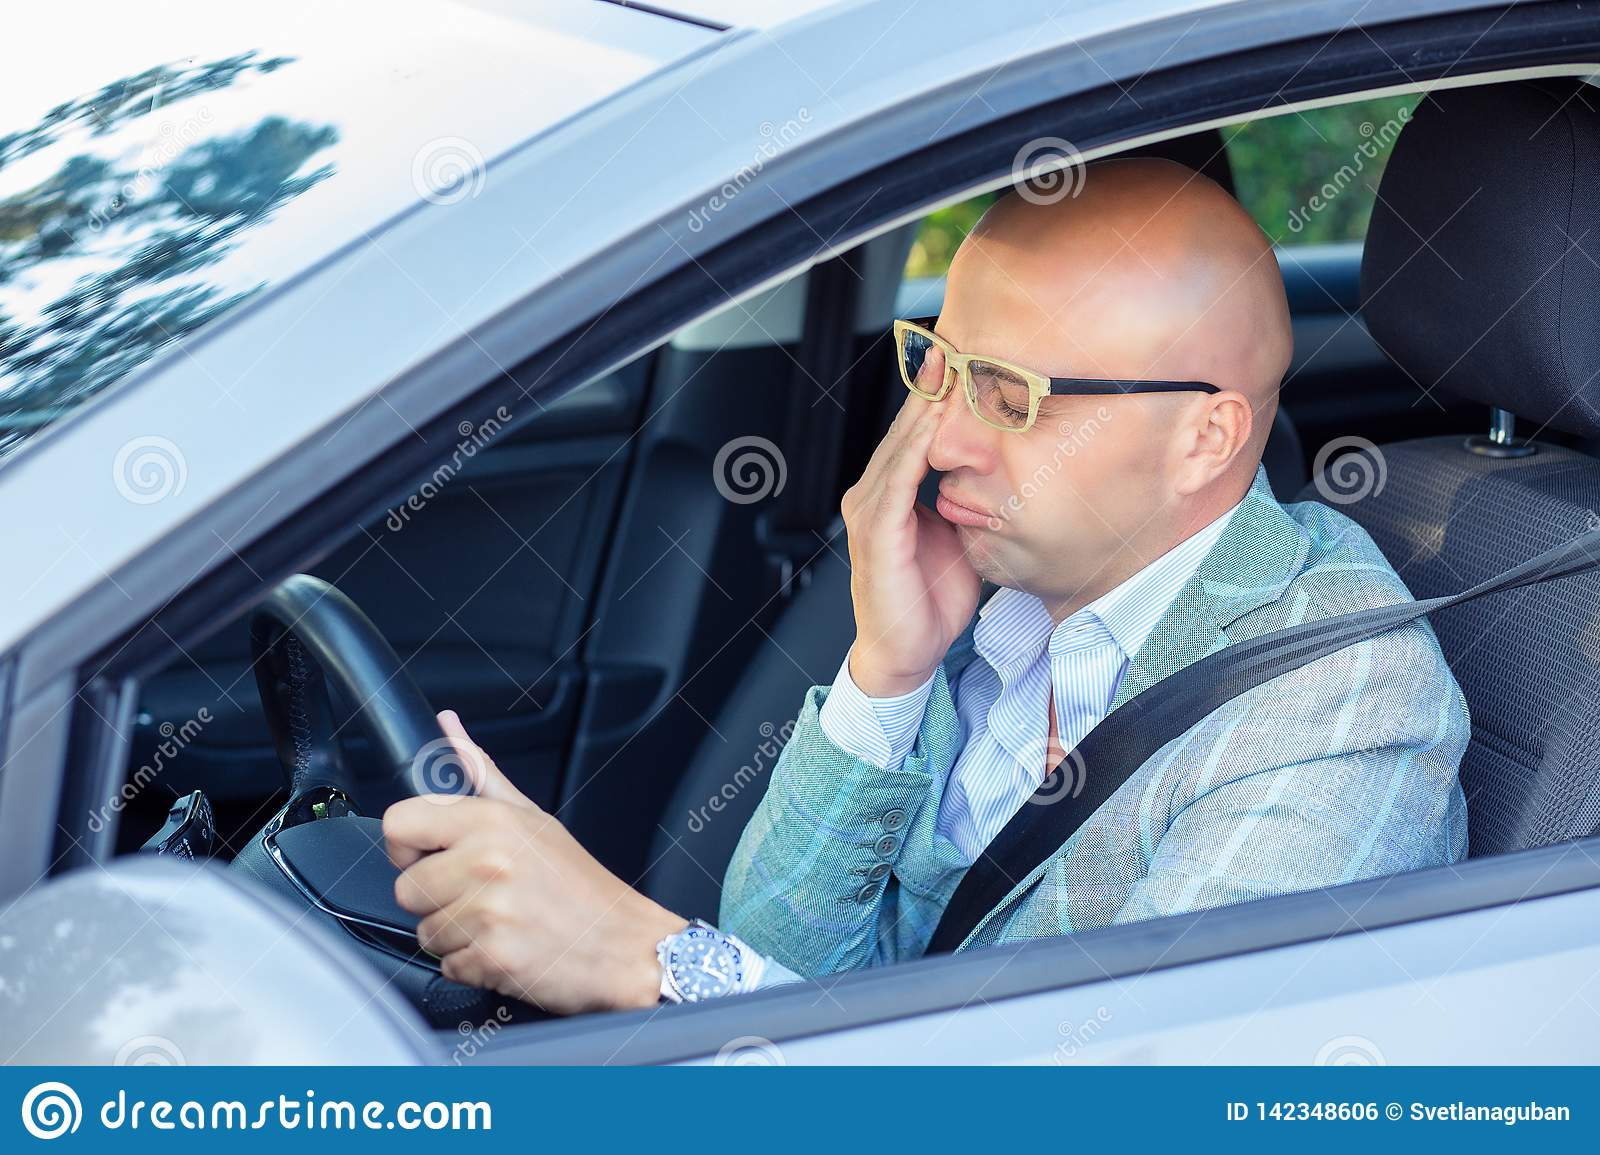 Sleepy fatigued yawning exhausted young man driving his car